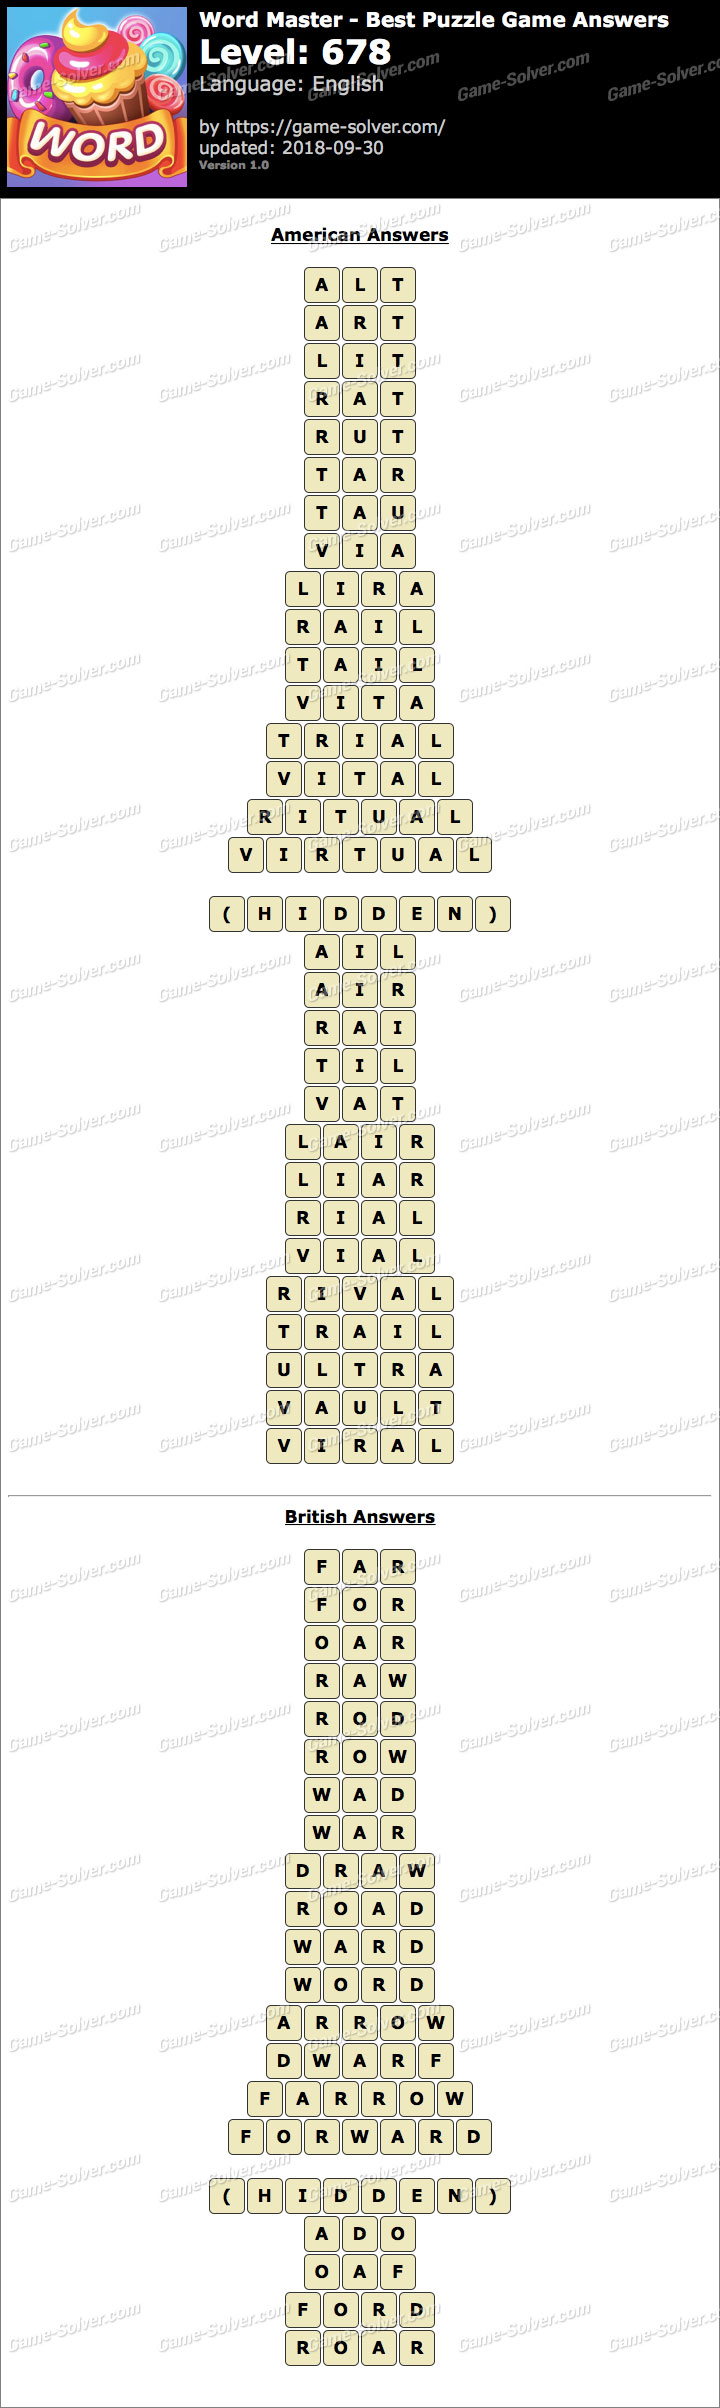 Word Master-Best Puzzle Game Level 678 Answers